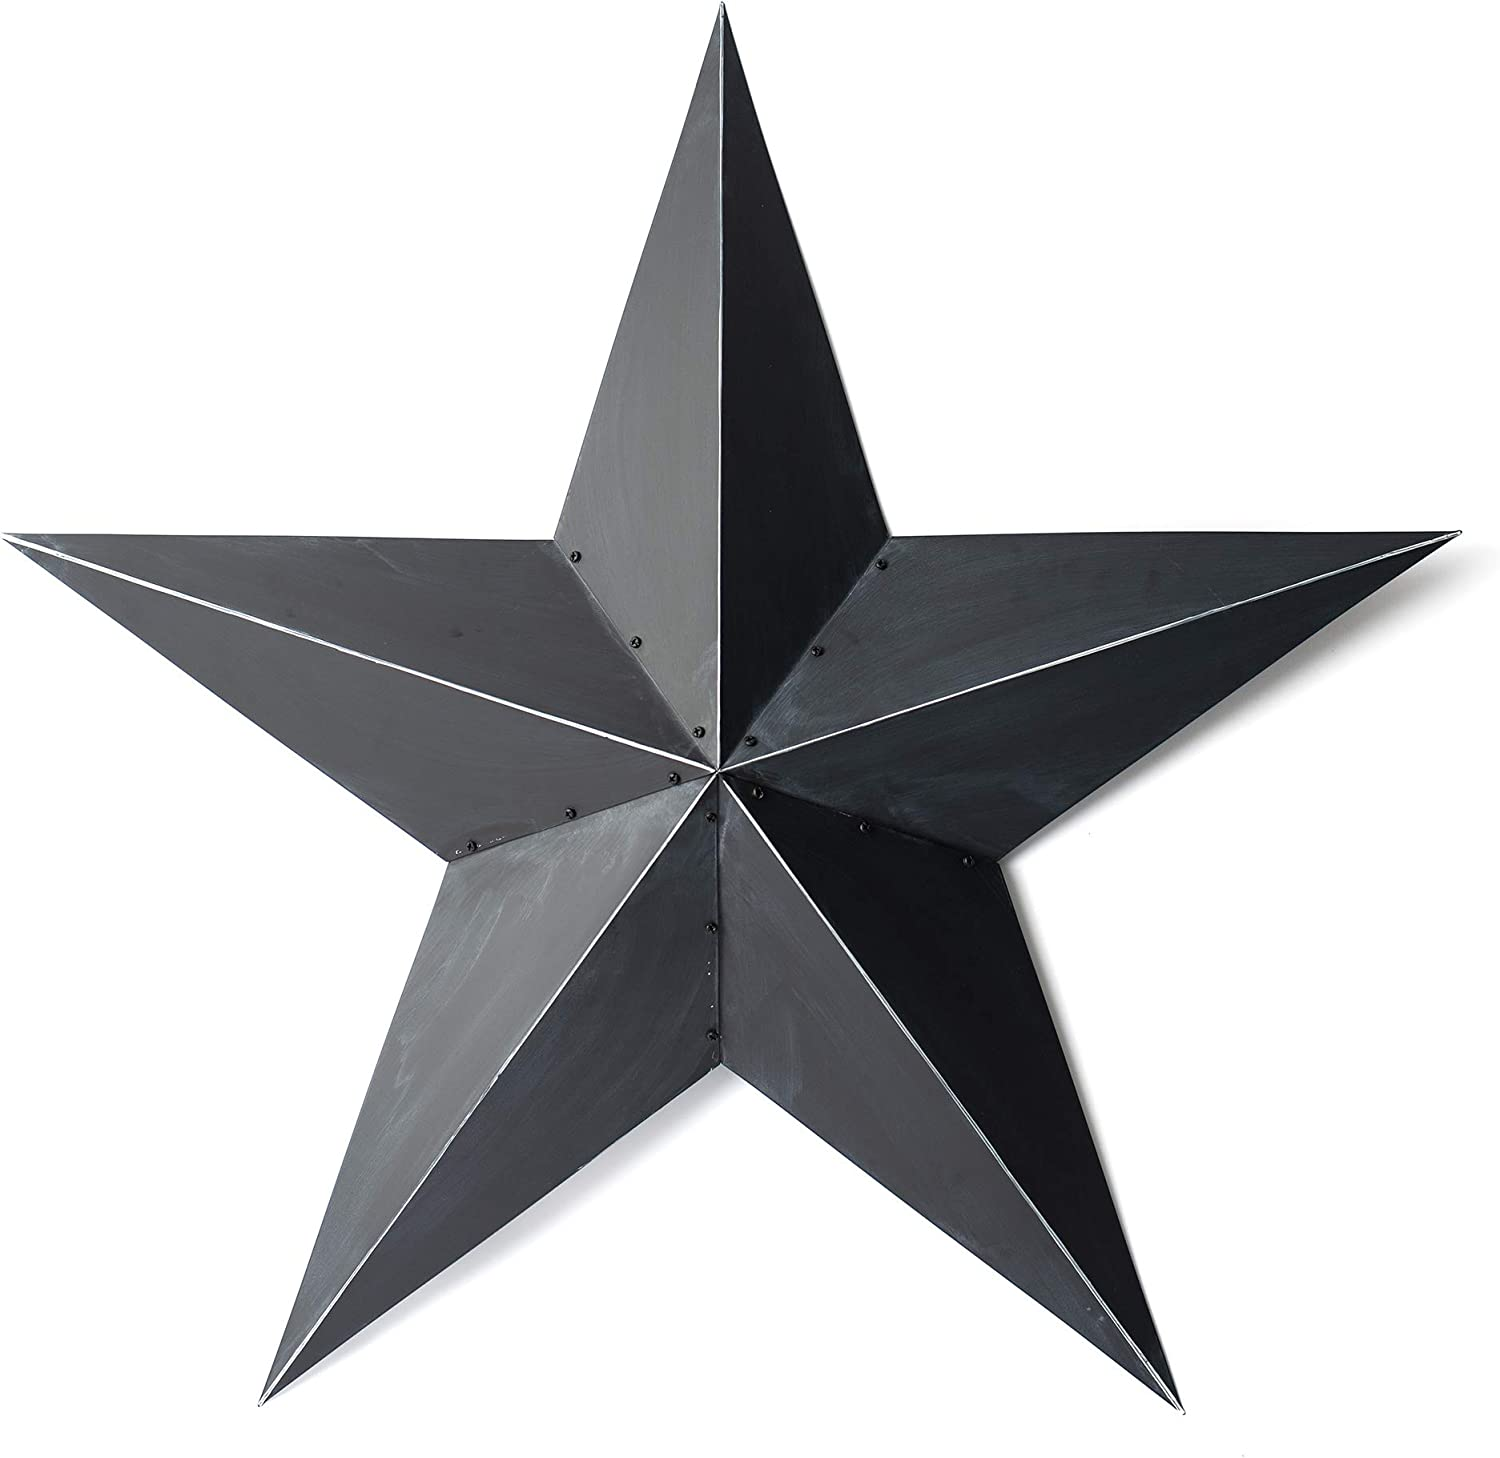 "BLACK METAL BARN STAR DECOR -36"" large indoor outdoor hanging rustic country house wall decorations. This Texas sized primitive patriotic barnstar is made with tough metal. Great Christmas stars decor"